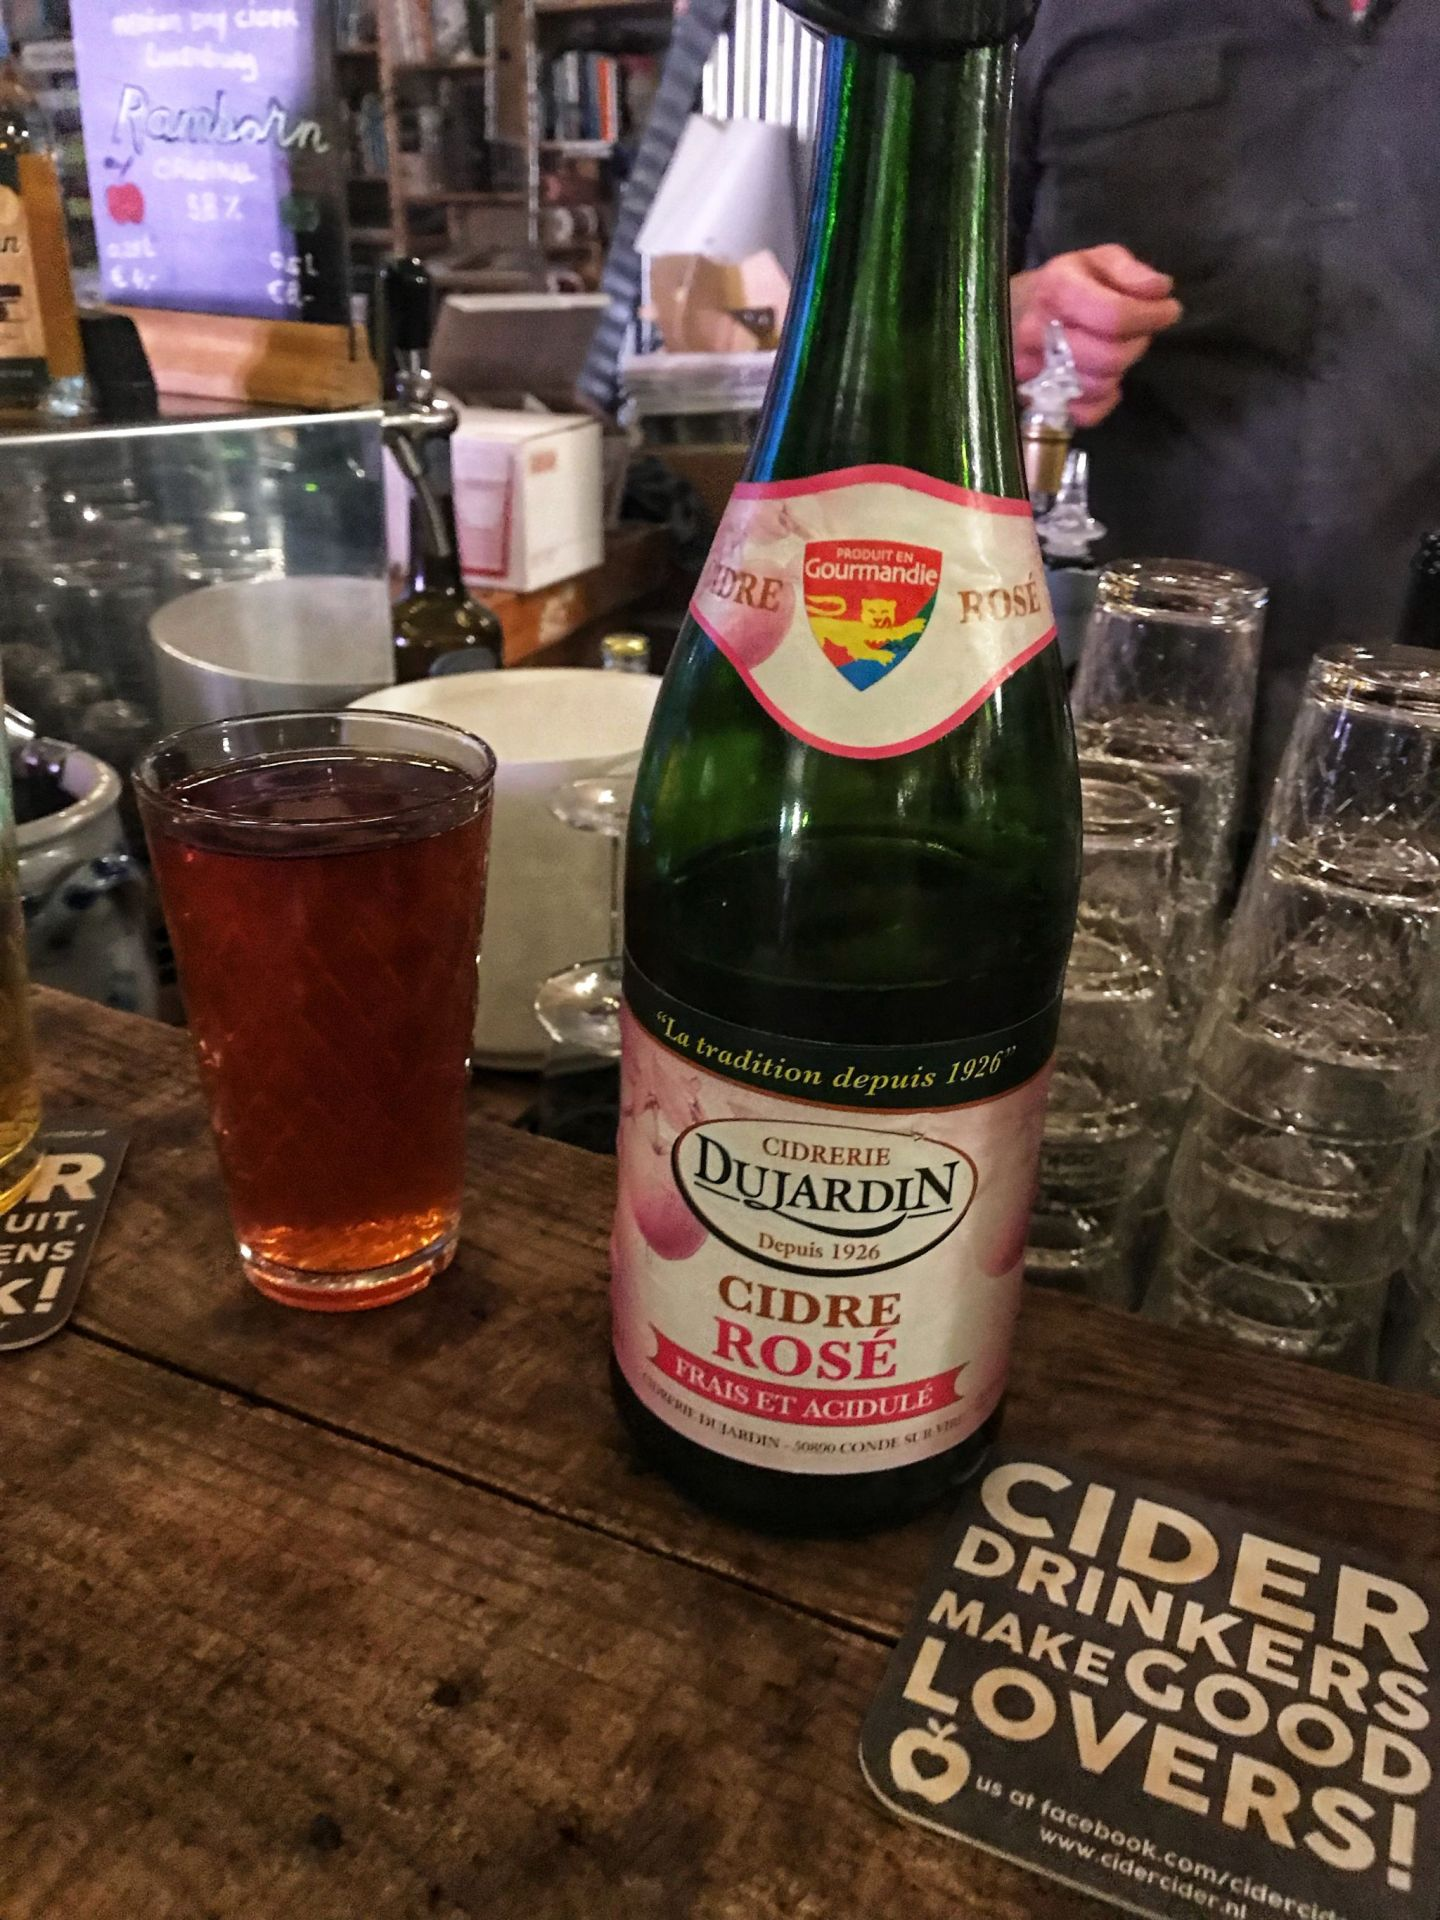 Cidre rose at Fenix Food Factory Rotterdam